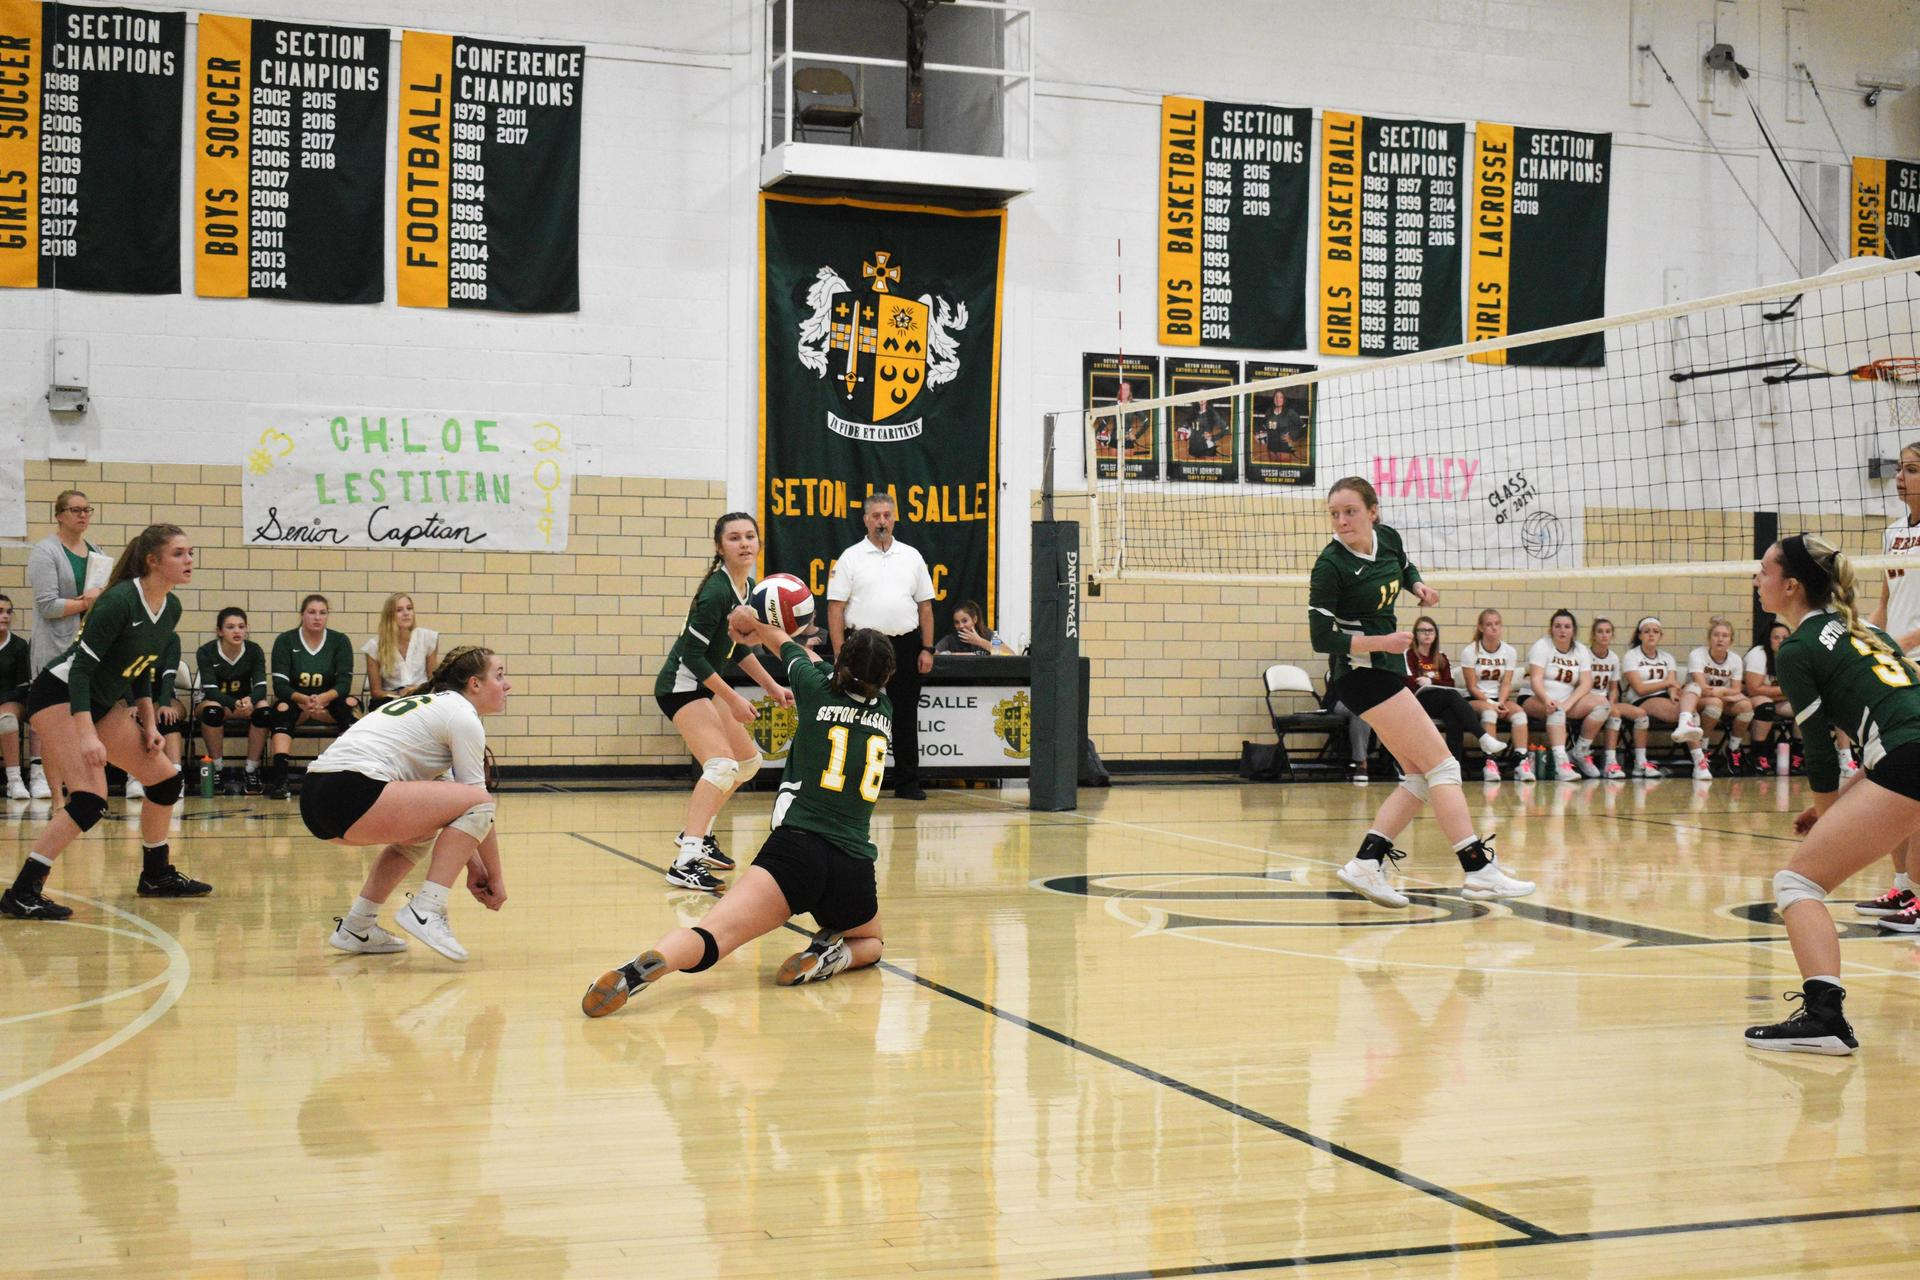 Girls Volleyball action shot